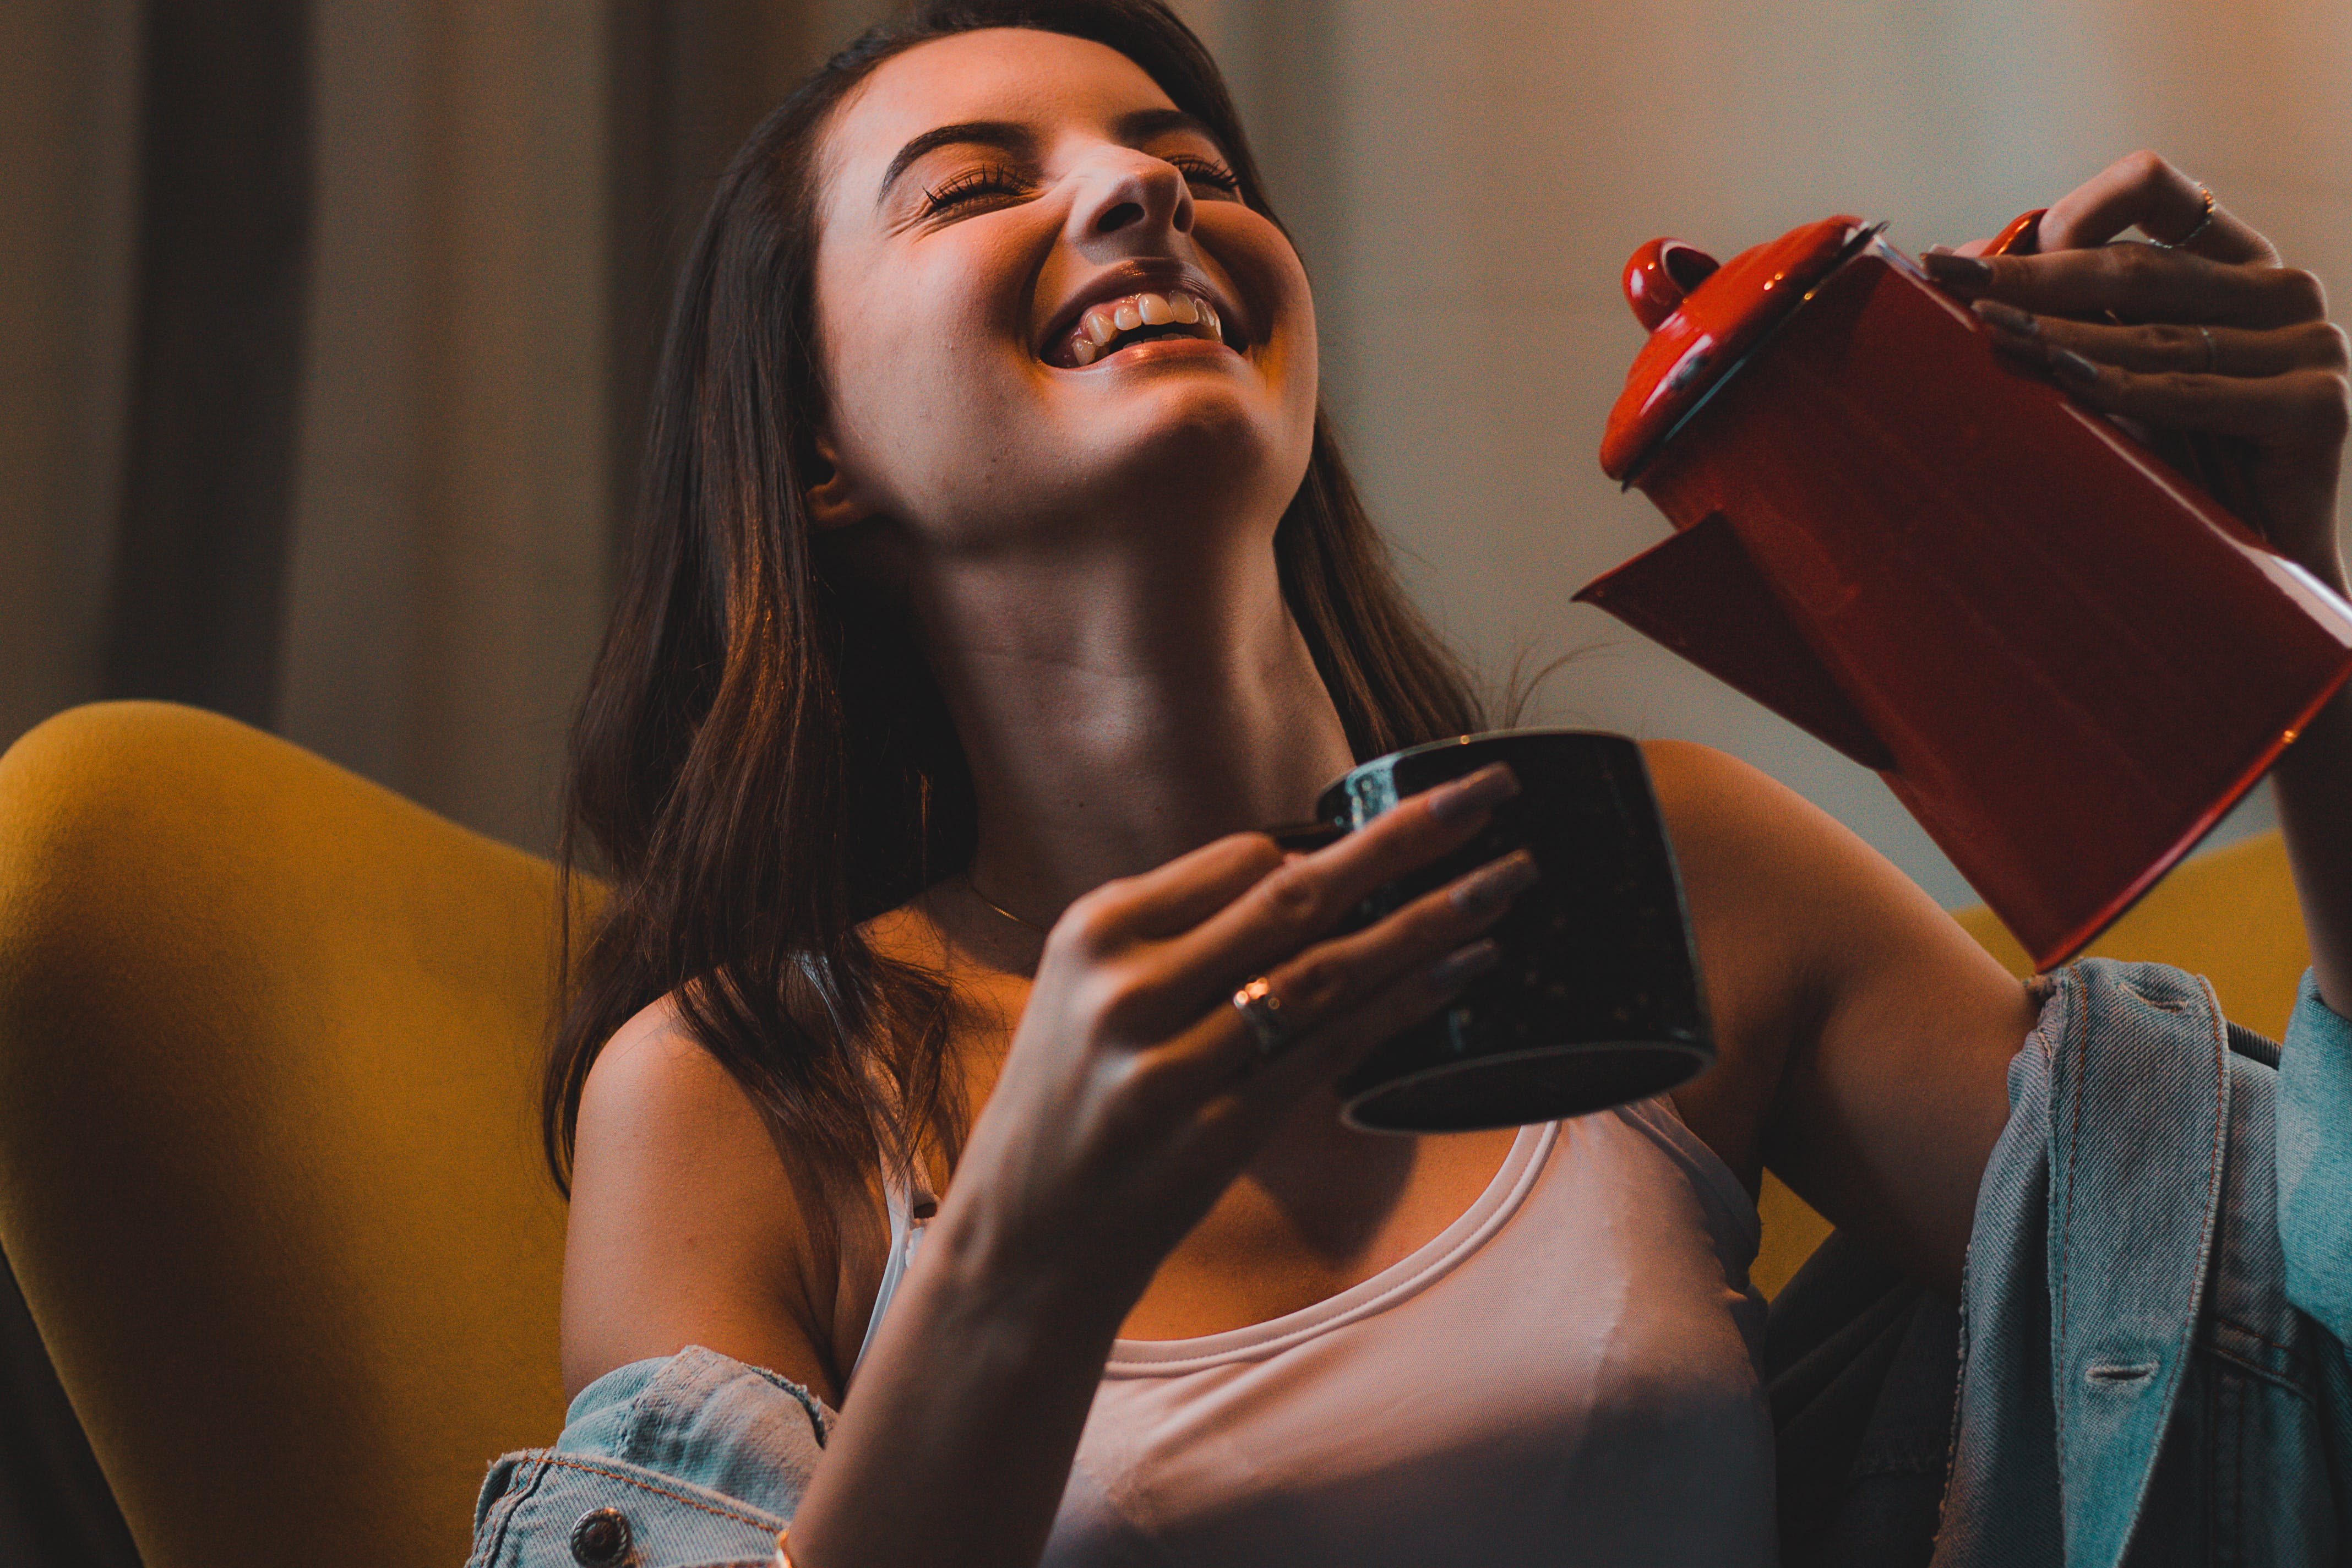 Woman Smiling While Pouring Beverage On Mug